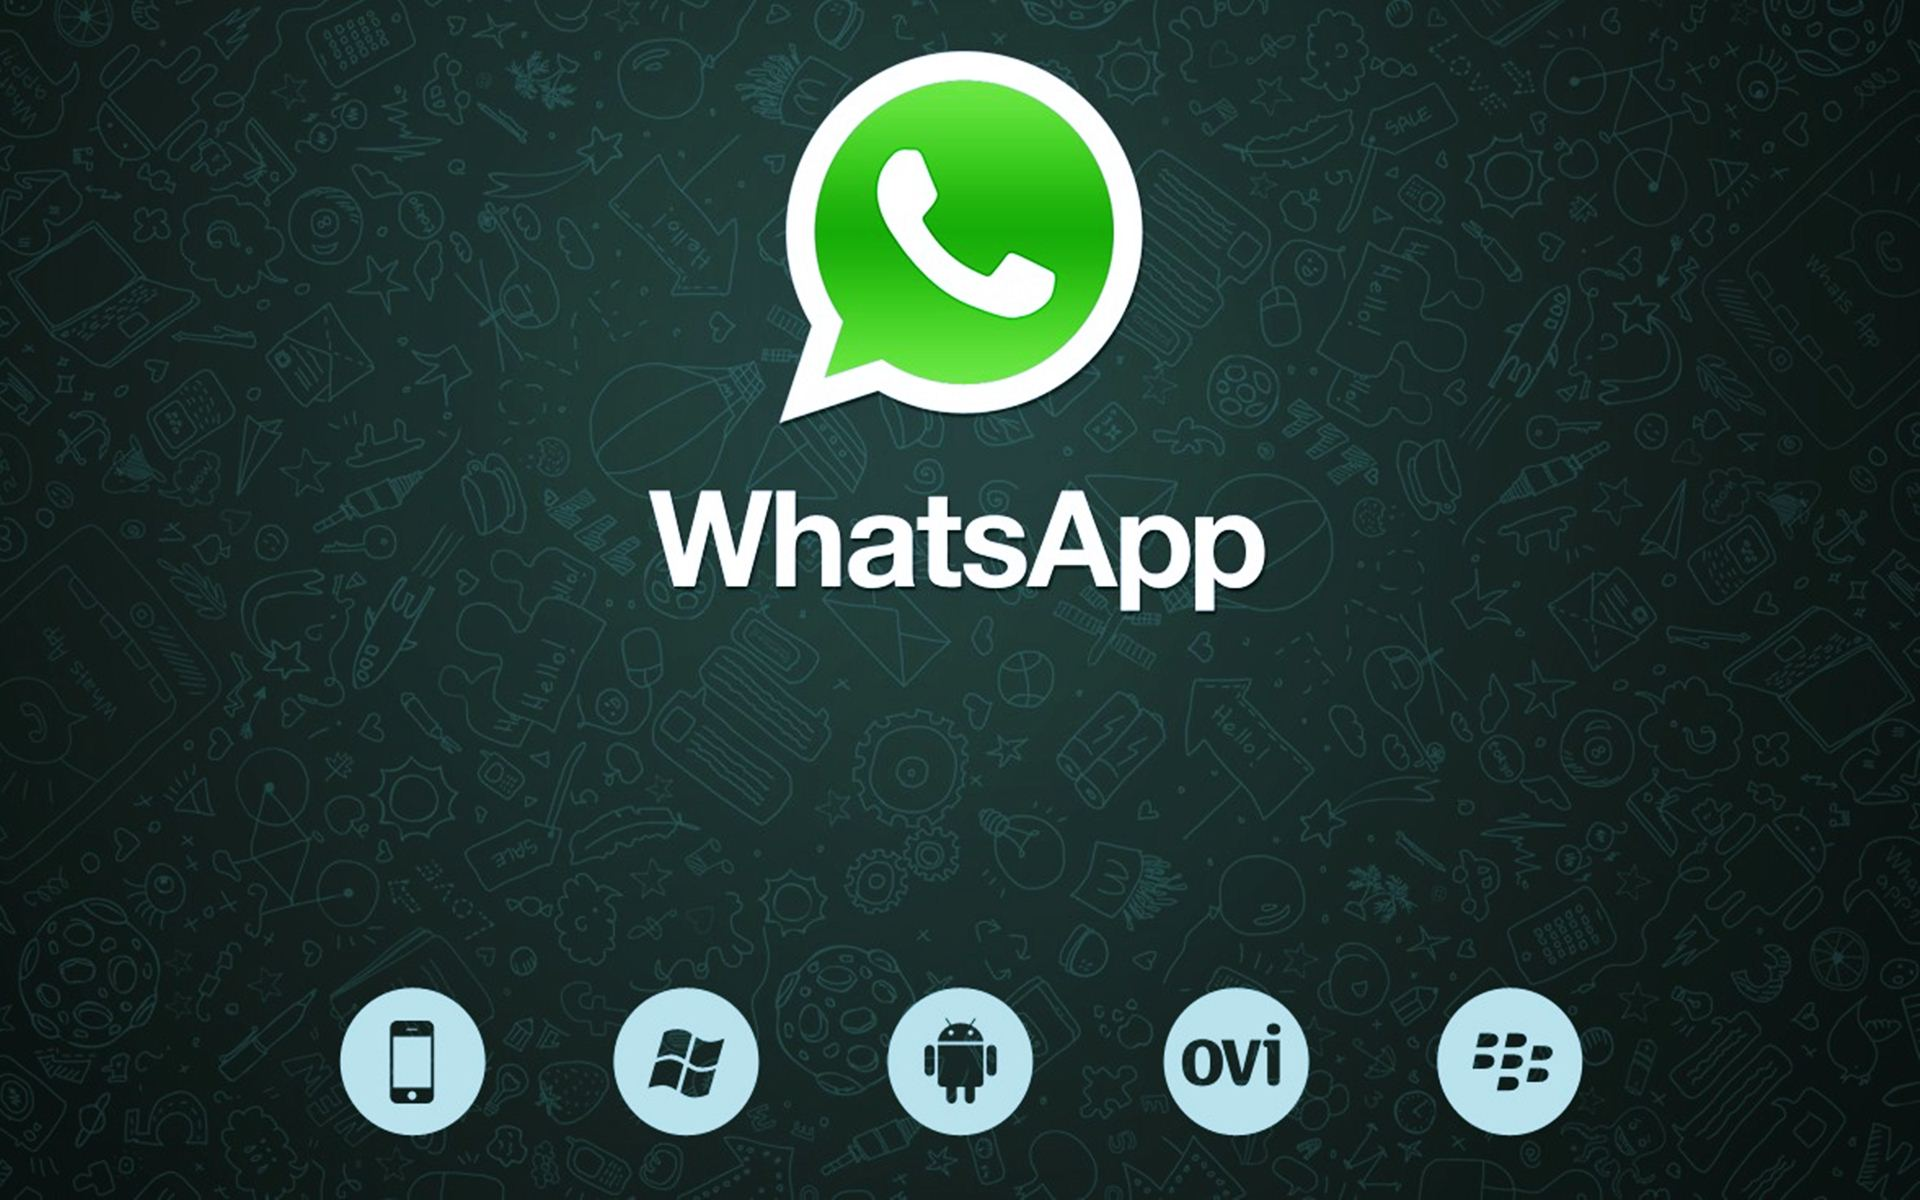 WhatsApp finally lets you send documents